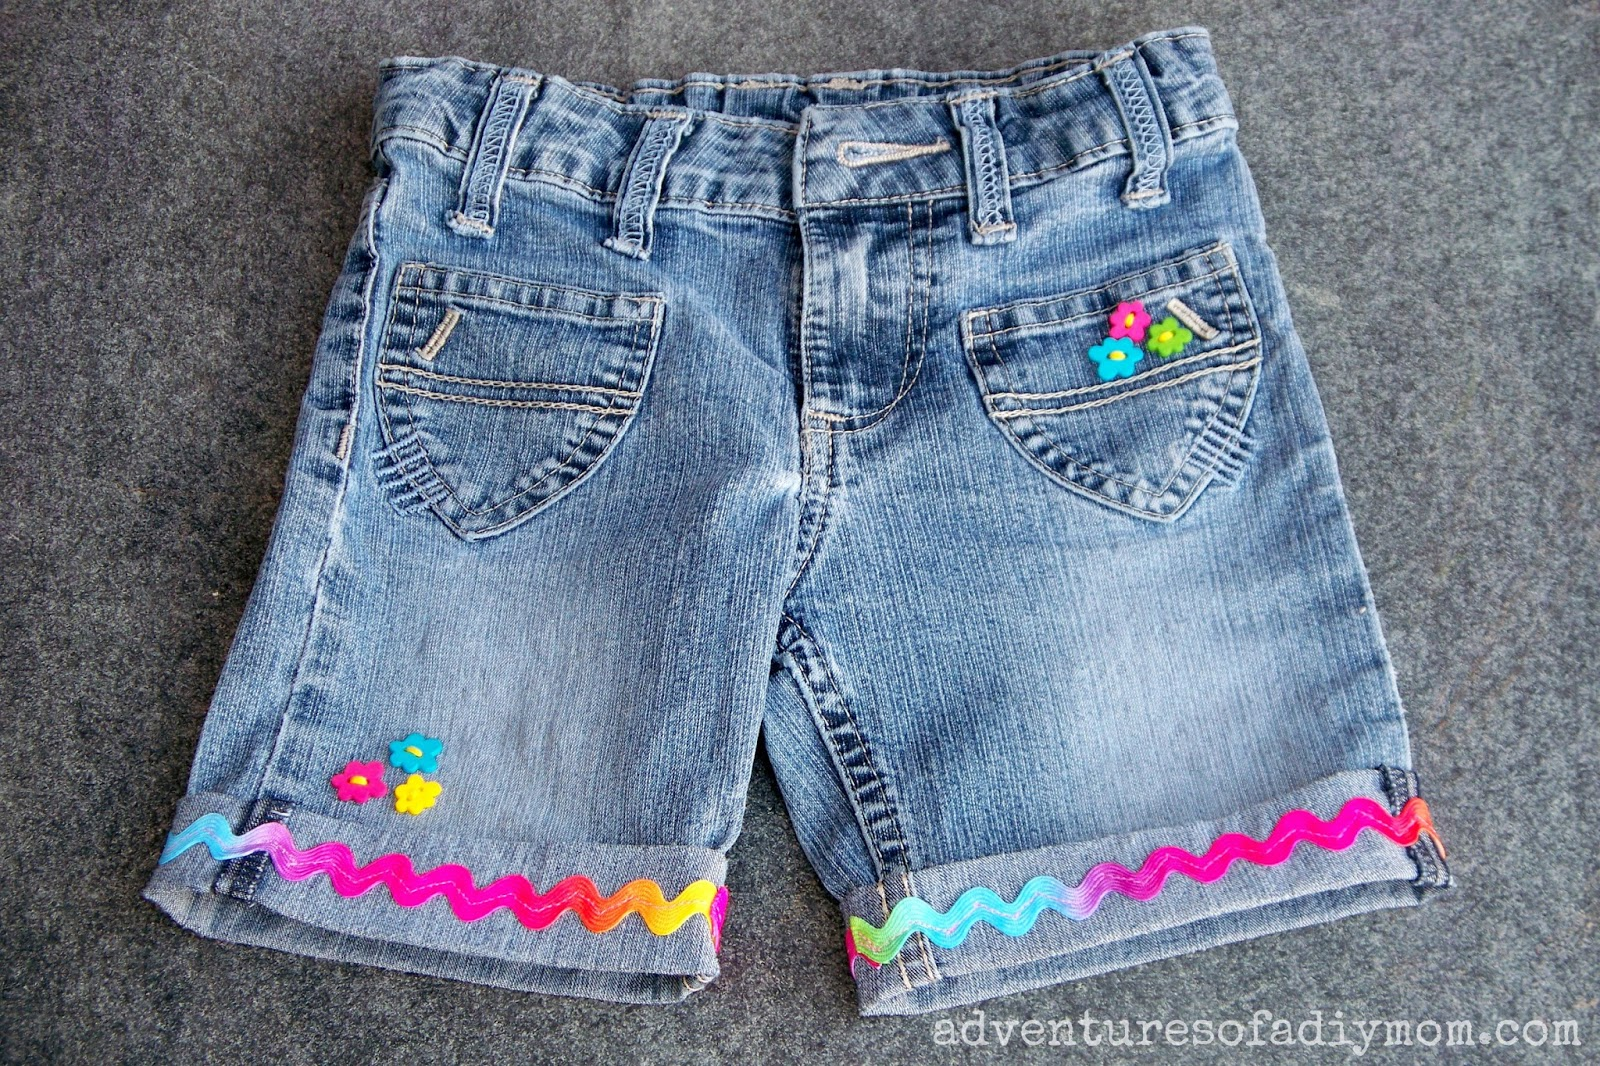 Cuffed Shorts with Ribbon and Buttons - Cut off Jean Shorts Series